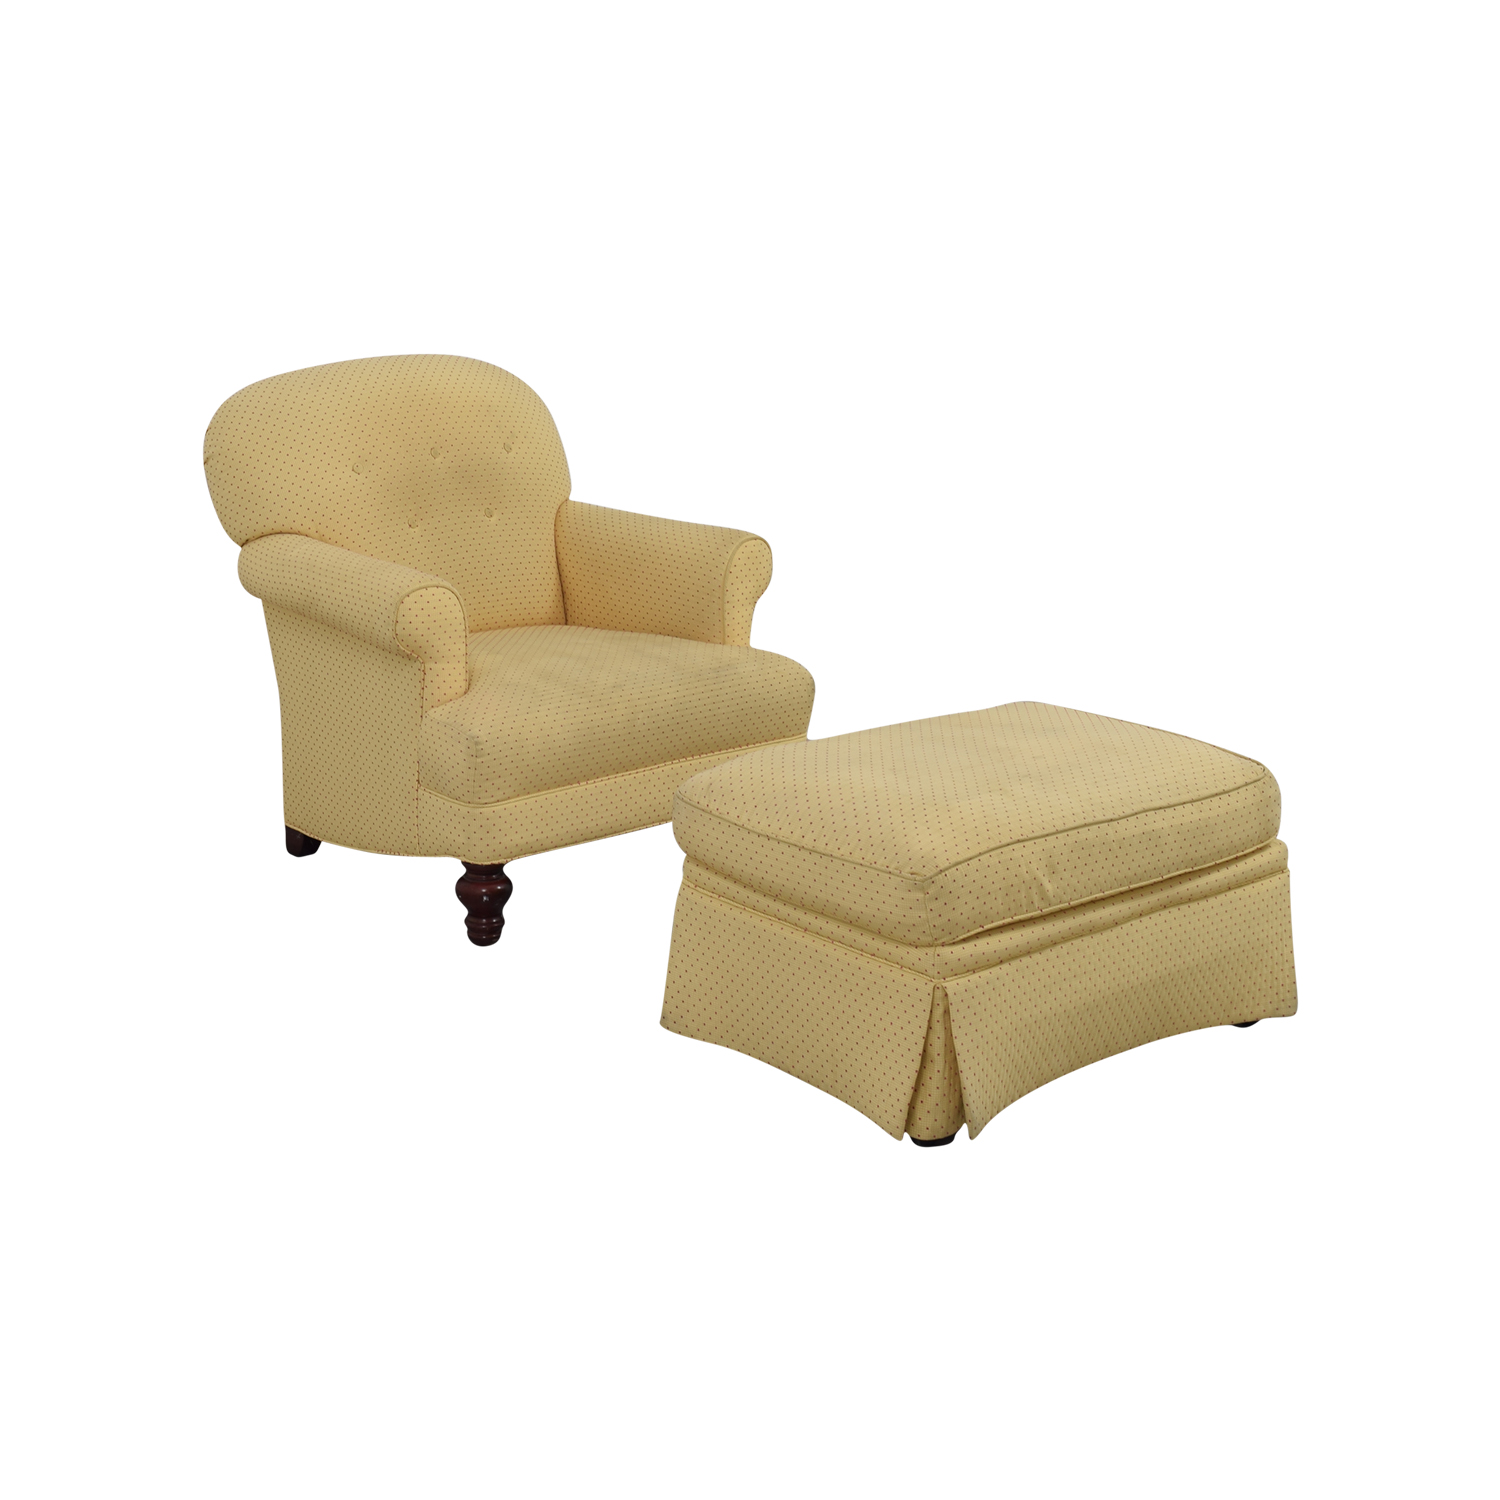 Chairs With Ottomans 90 Off Yellow Arm Chair With Ottoman Chairs